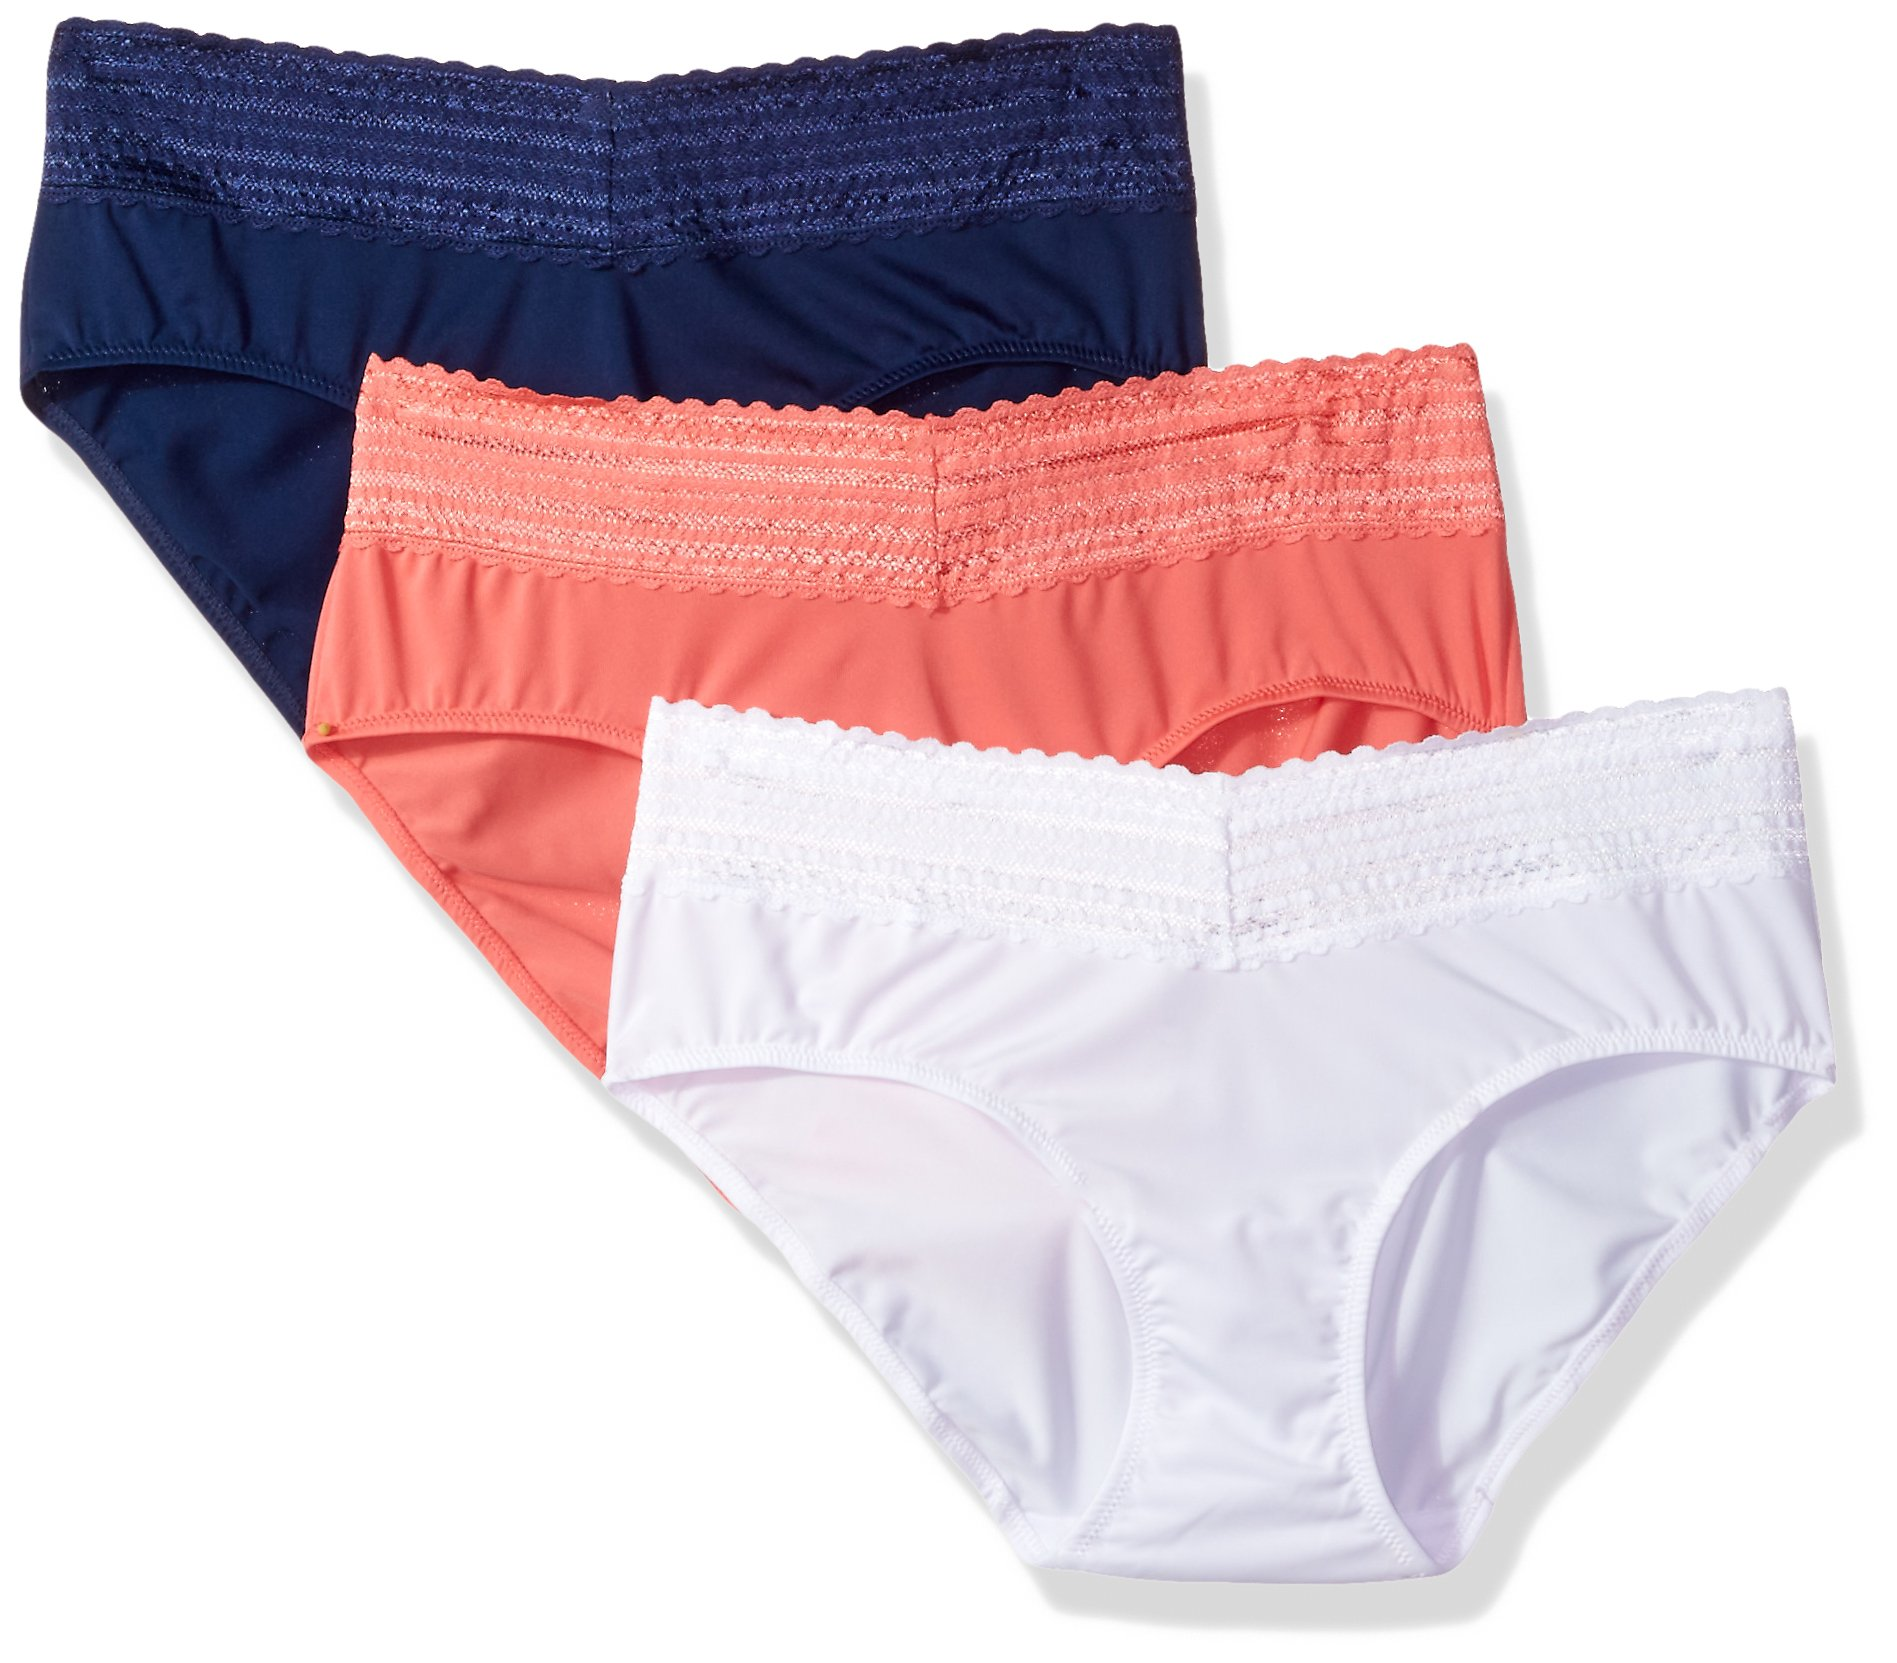 Warner's Women's Plus Size Blissful Benefits No Muffin Top 3 Pack Lace Hipster Panties, White/Navy Ink/Coral Crush, 2XL